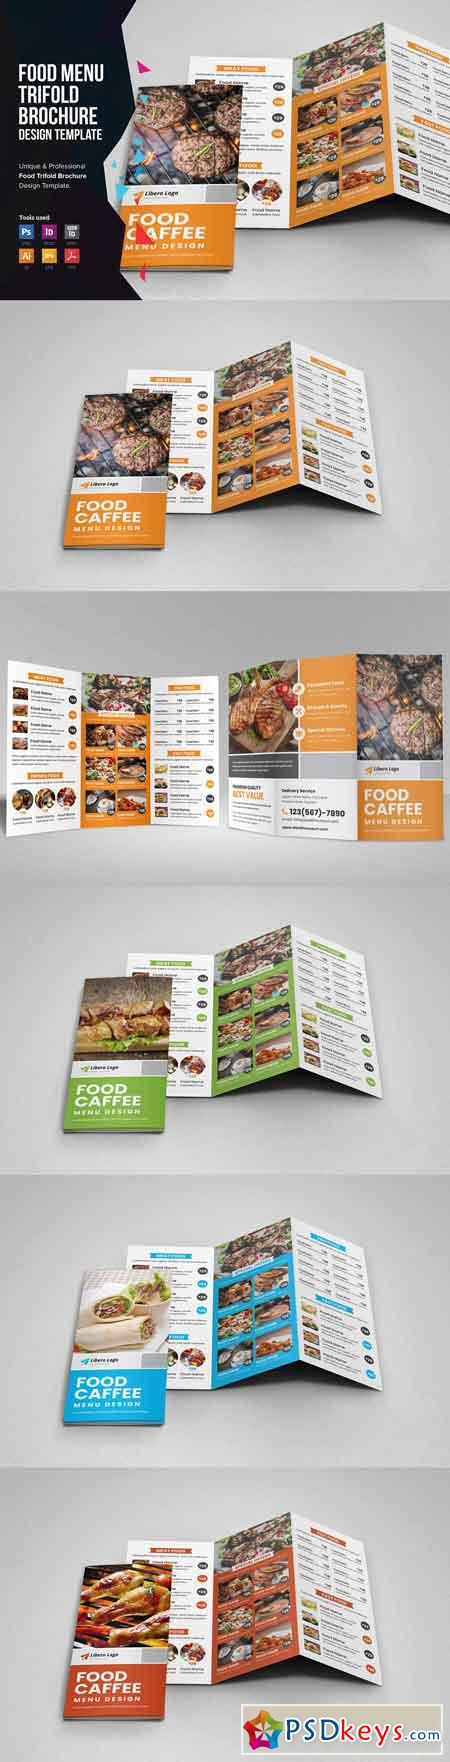 Food Menu Trifold Brochure v2 3361495